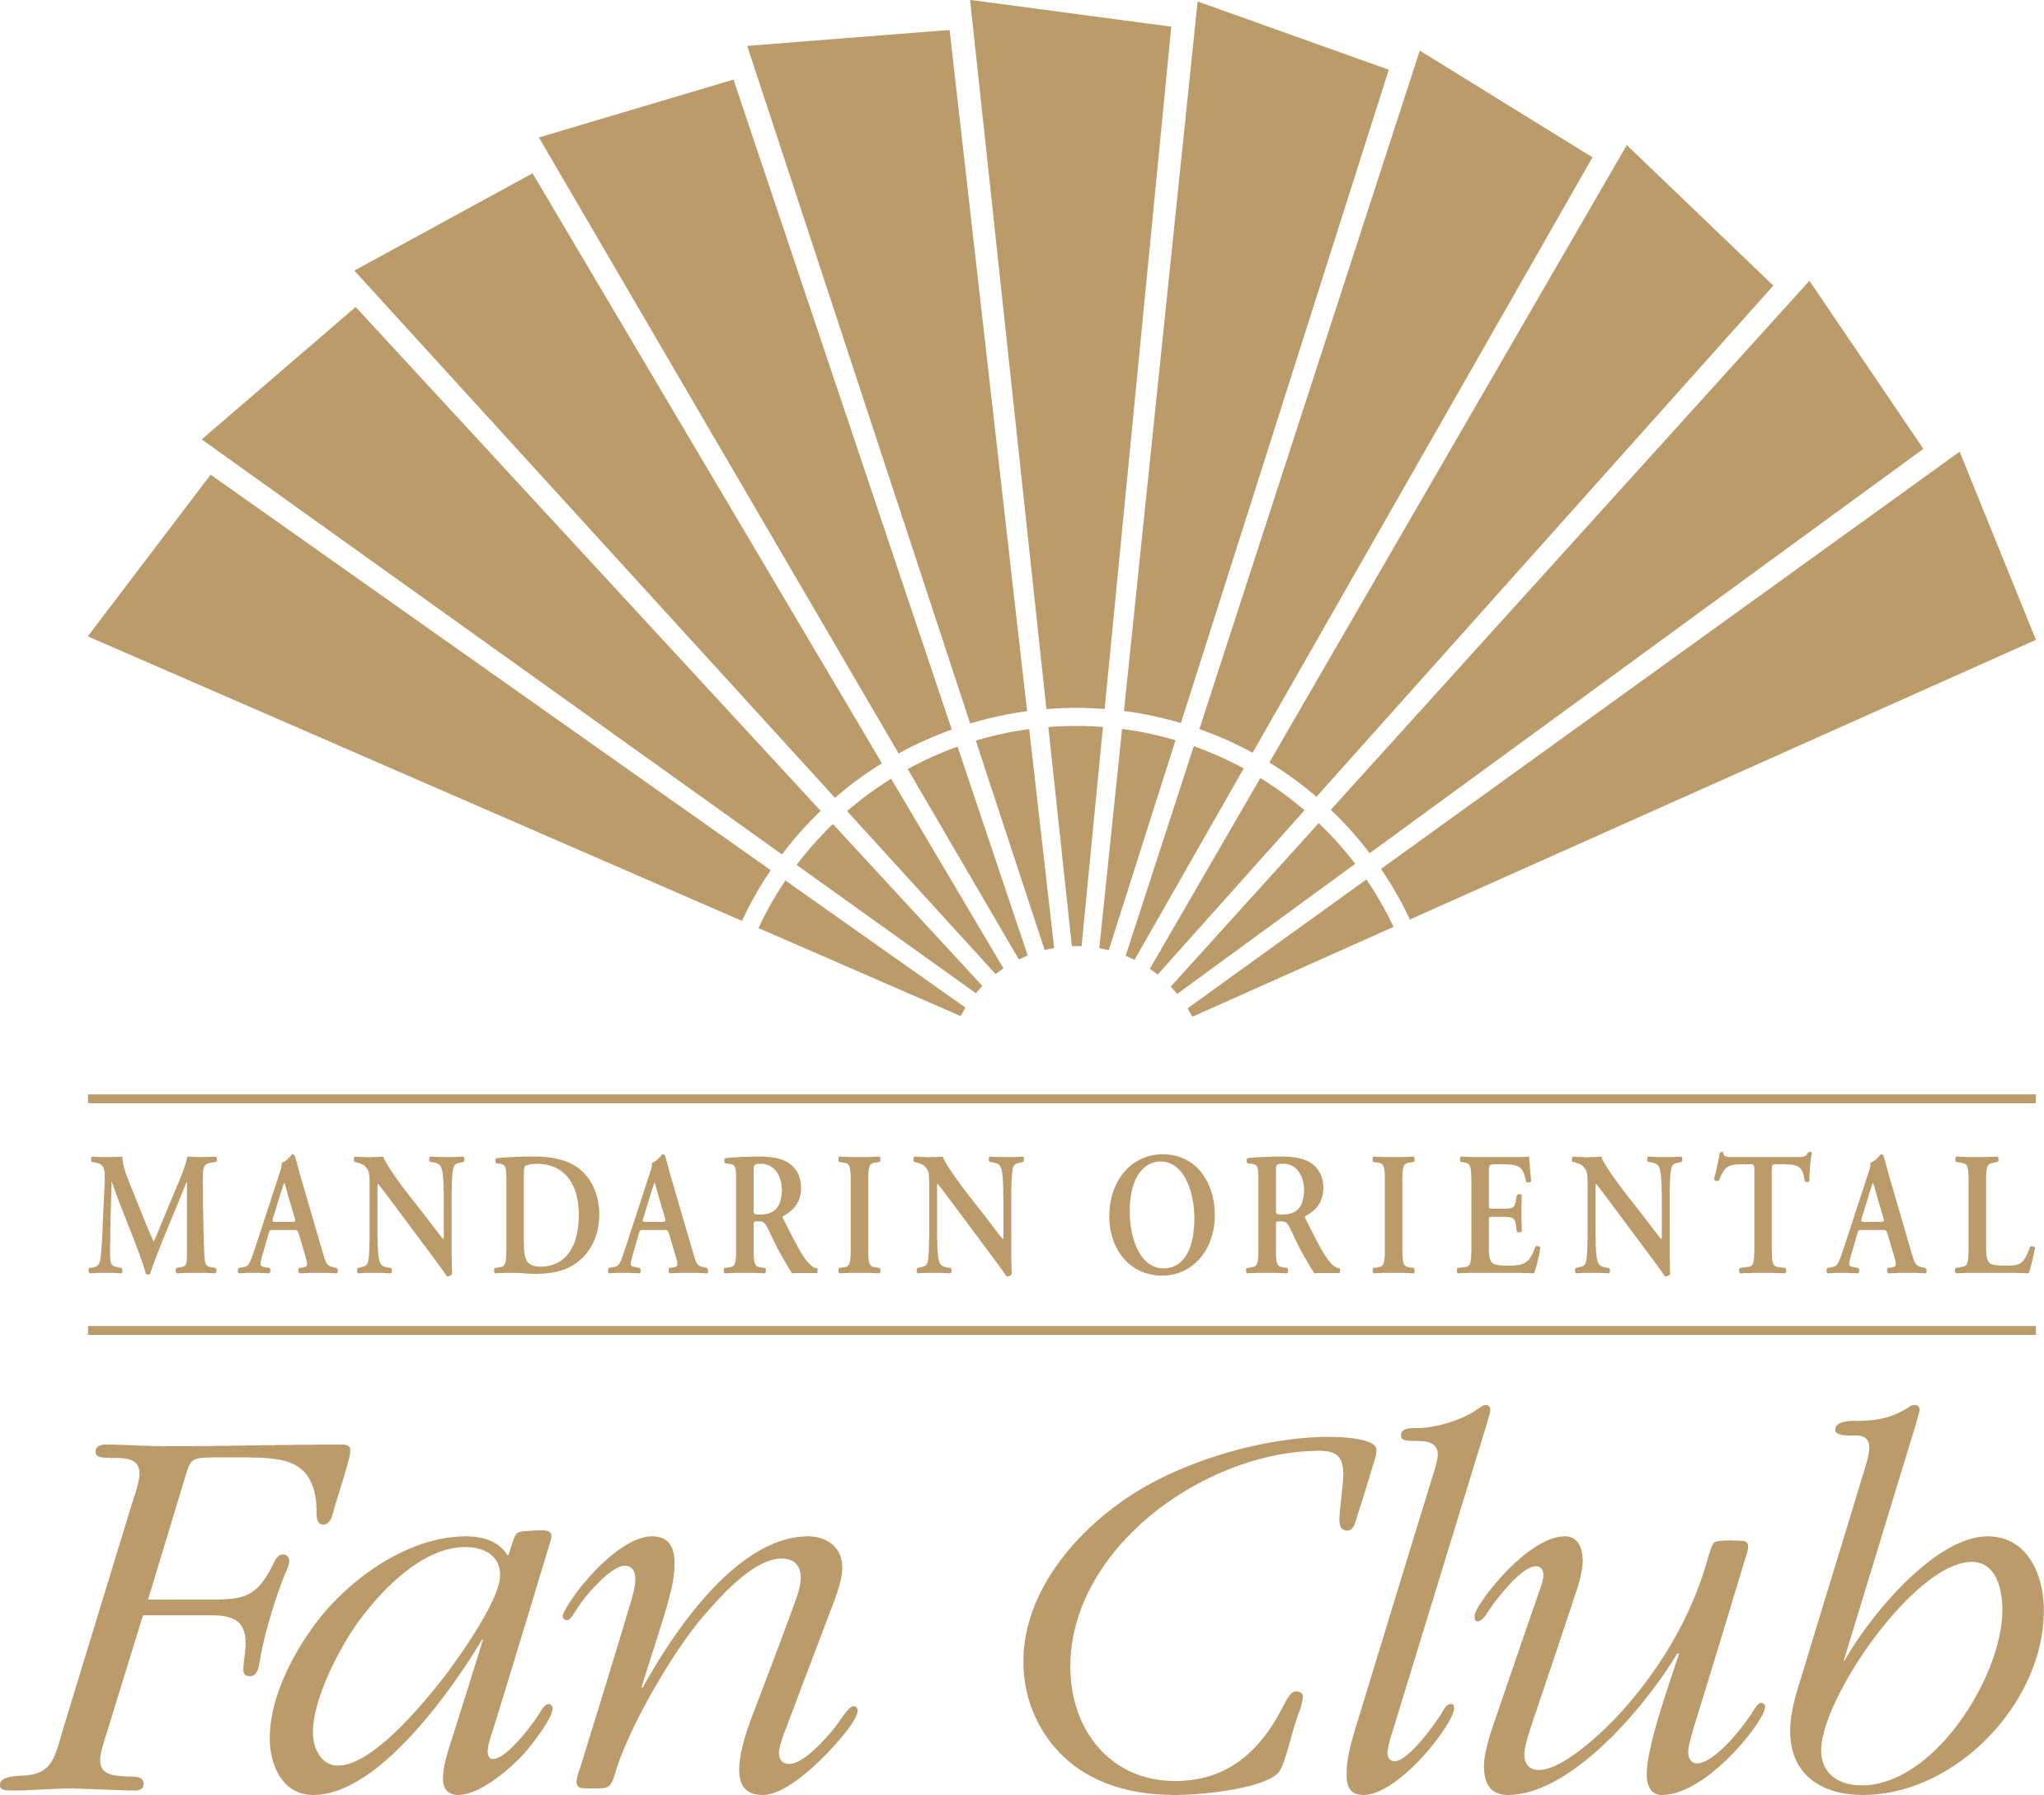 Fan Club logo